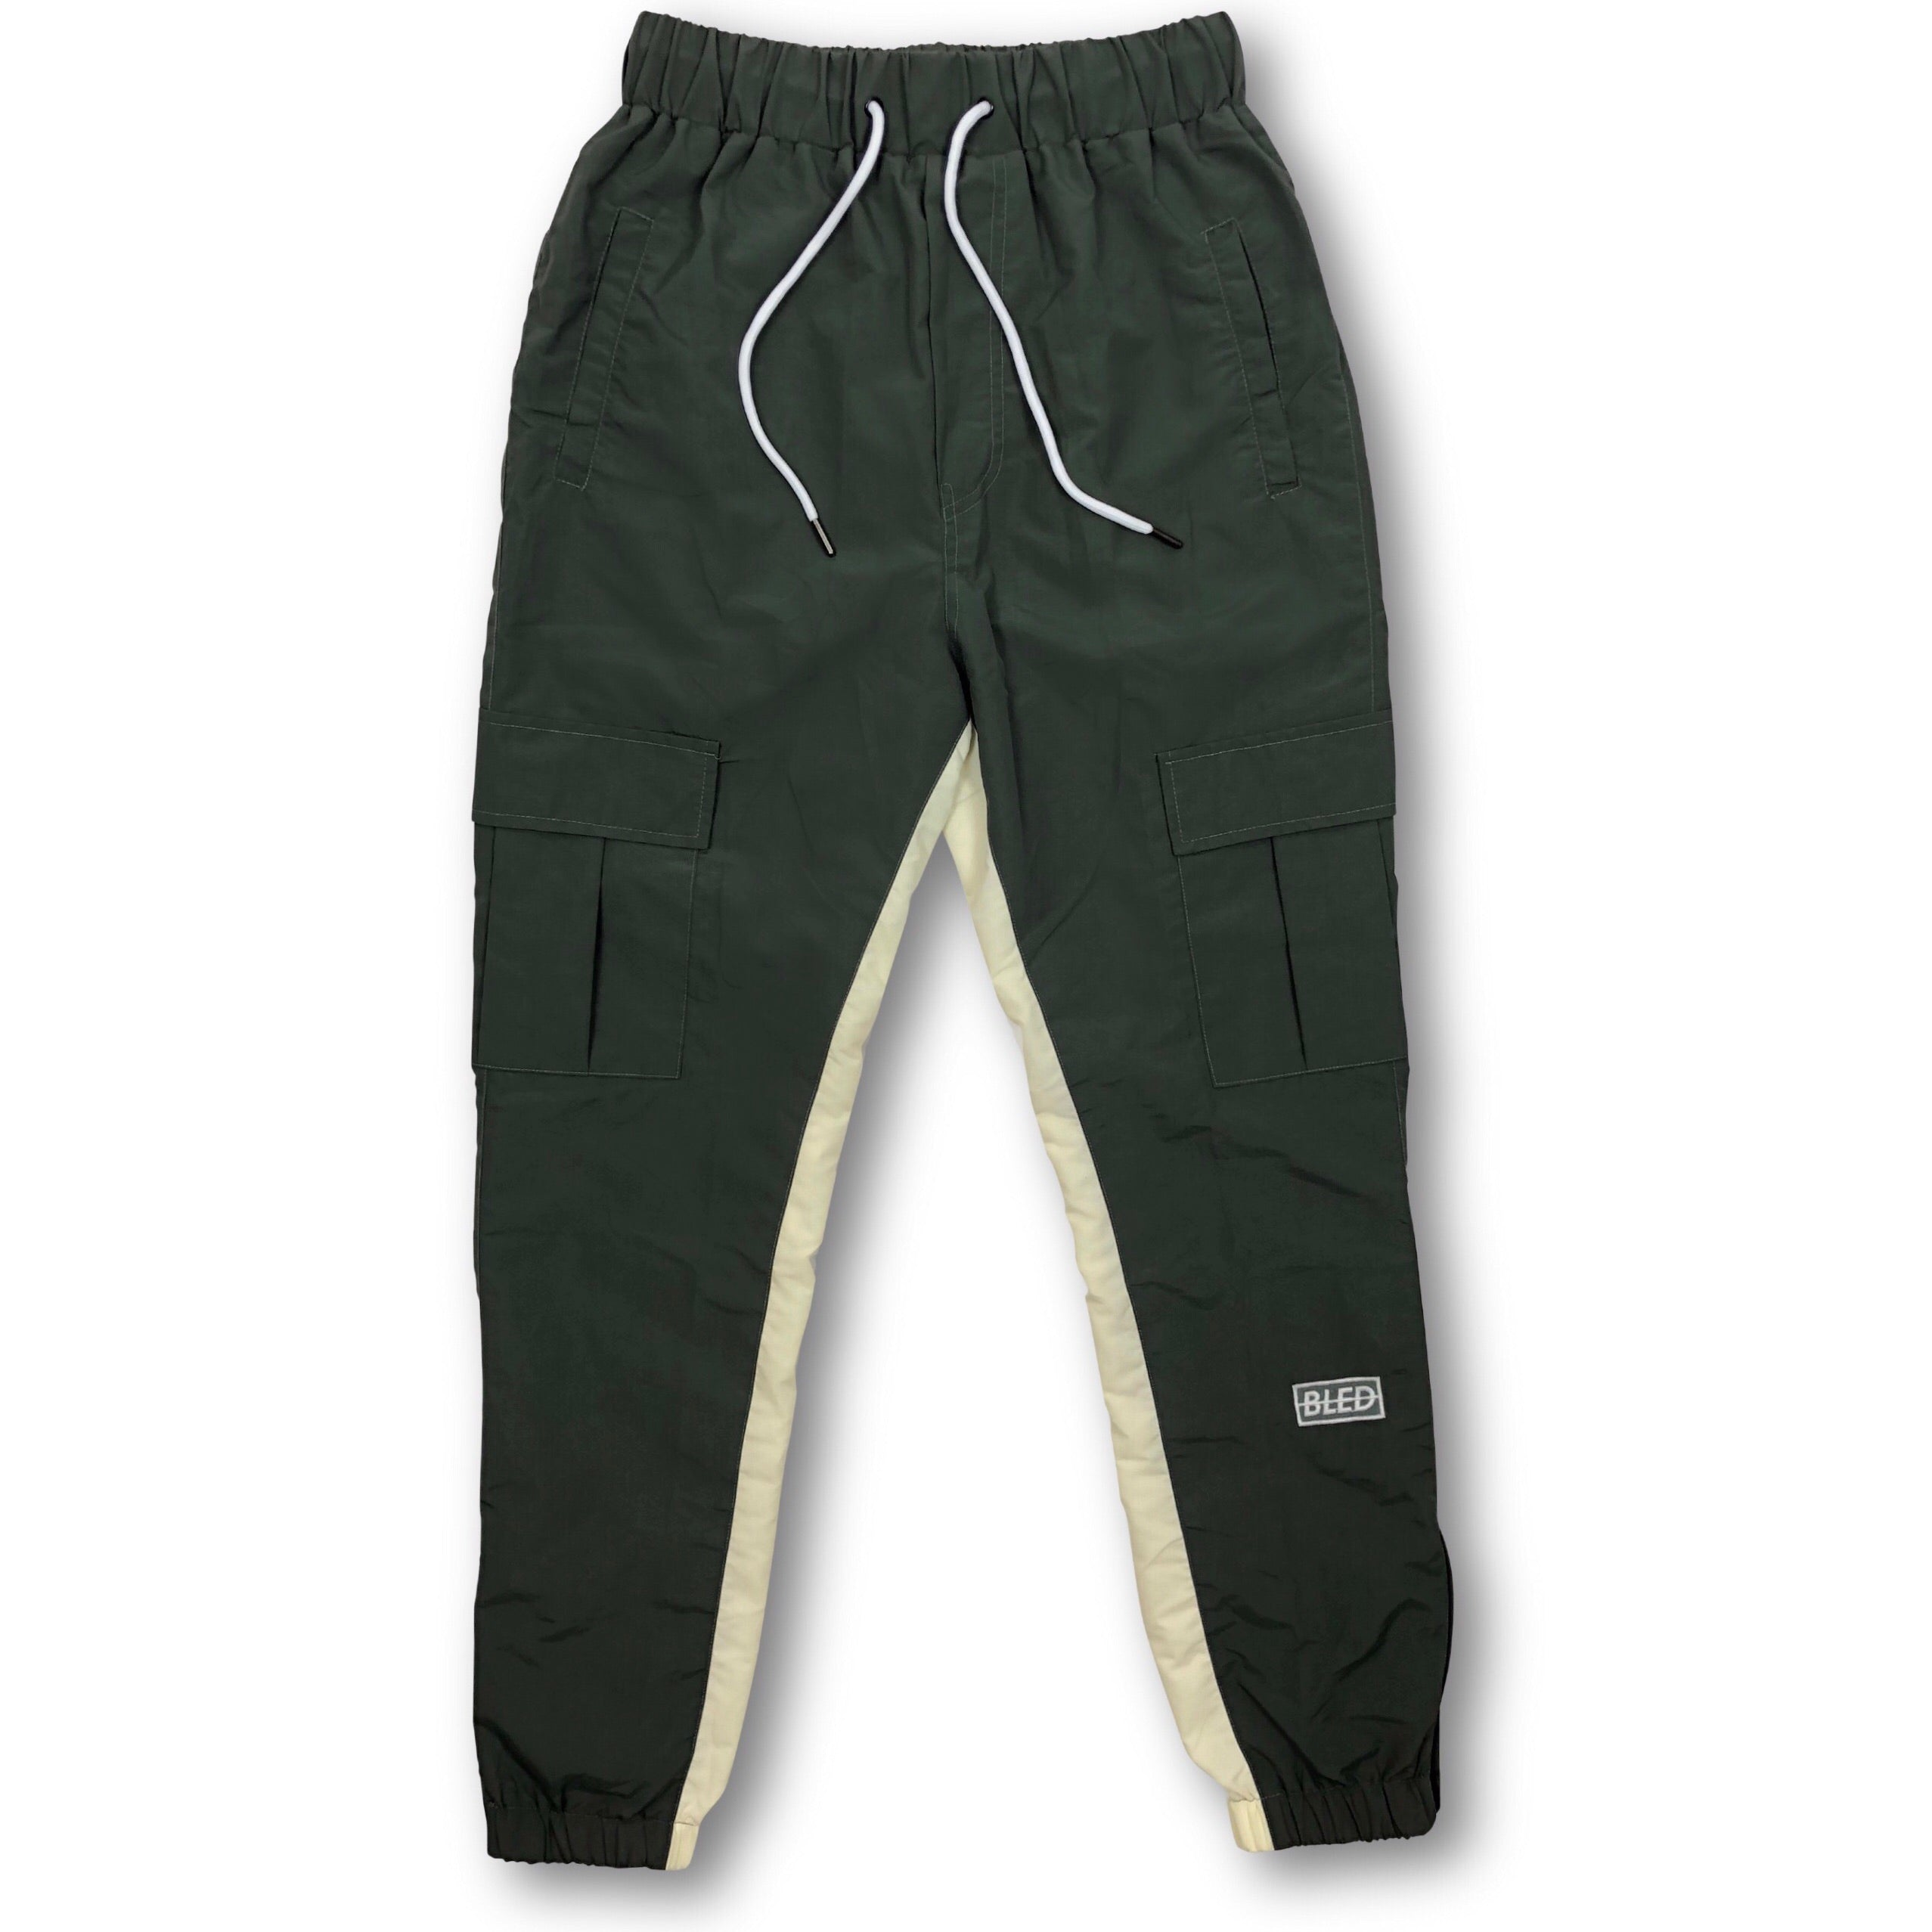 Bled Bledwear Tracksuit Track Pant Cargo Pocket Nylon Streetwear Stealth Hypebeast Highsnobiety